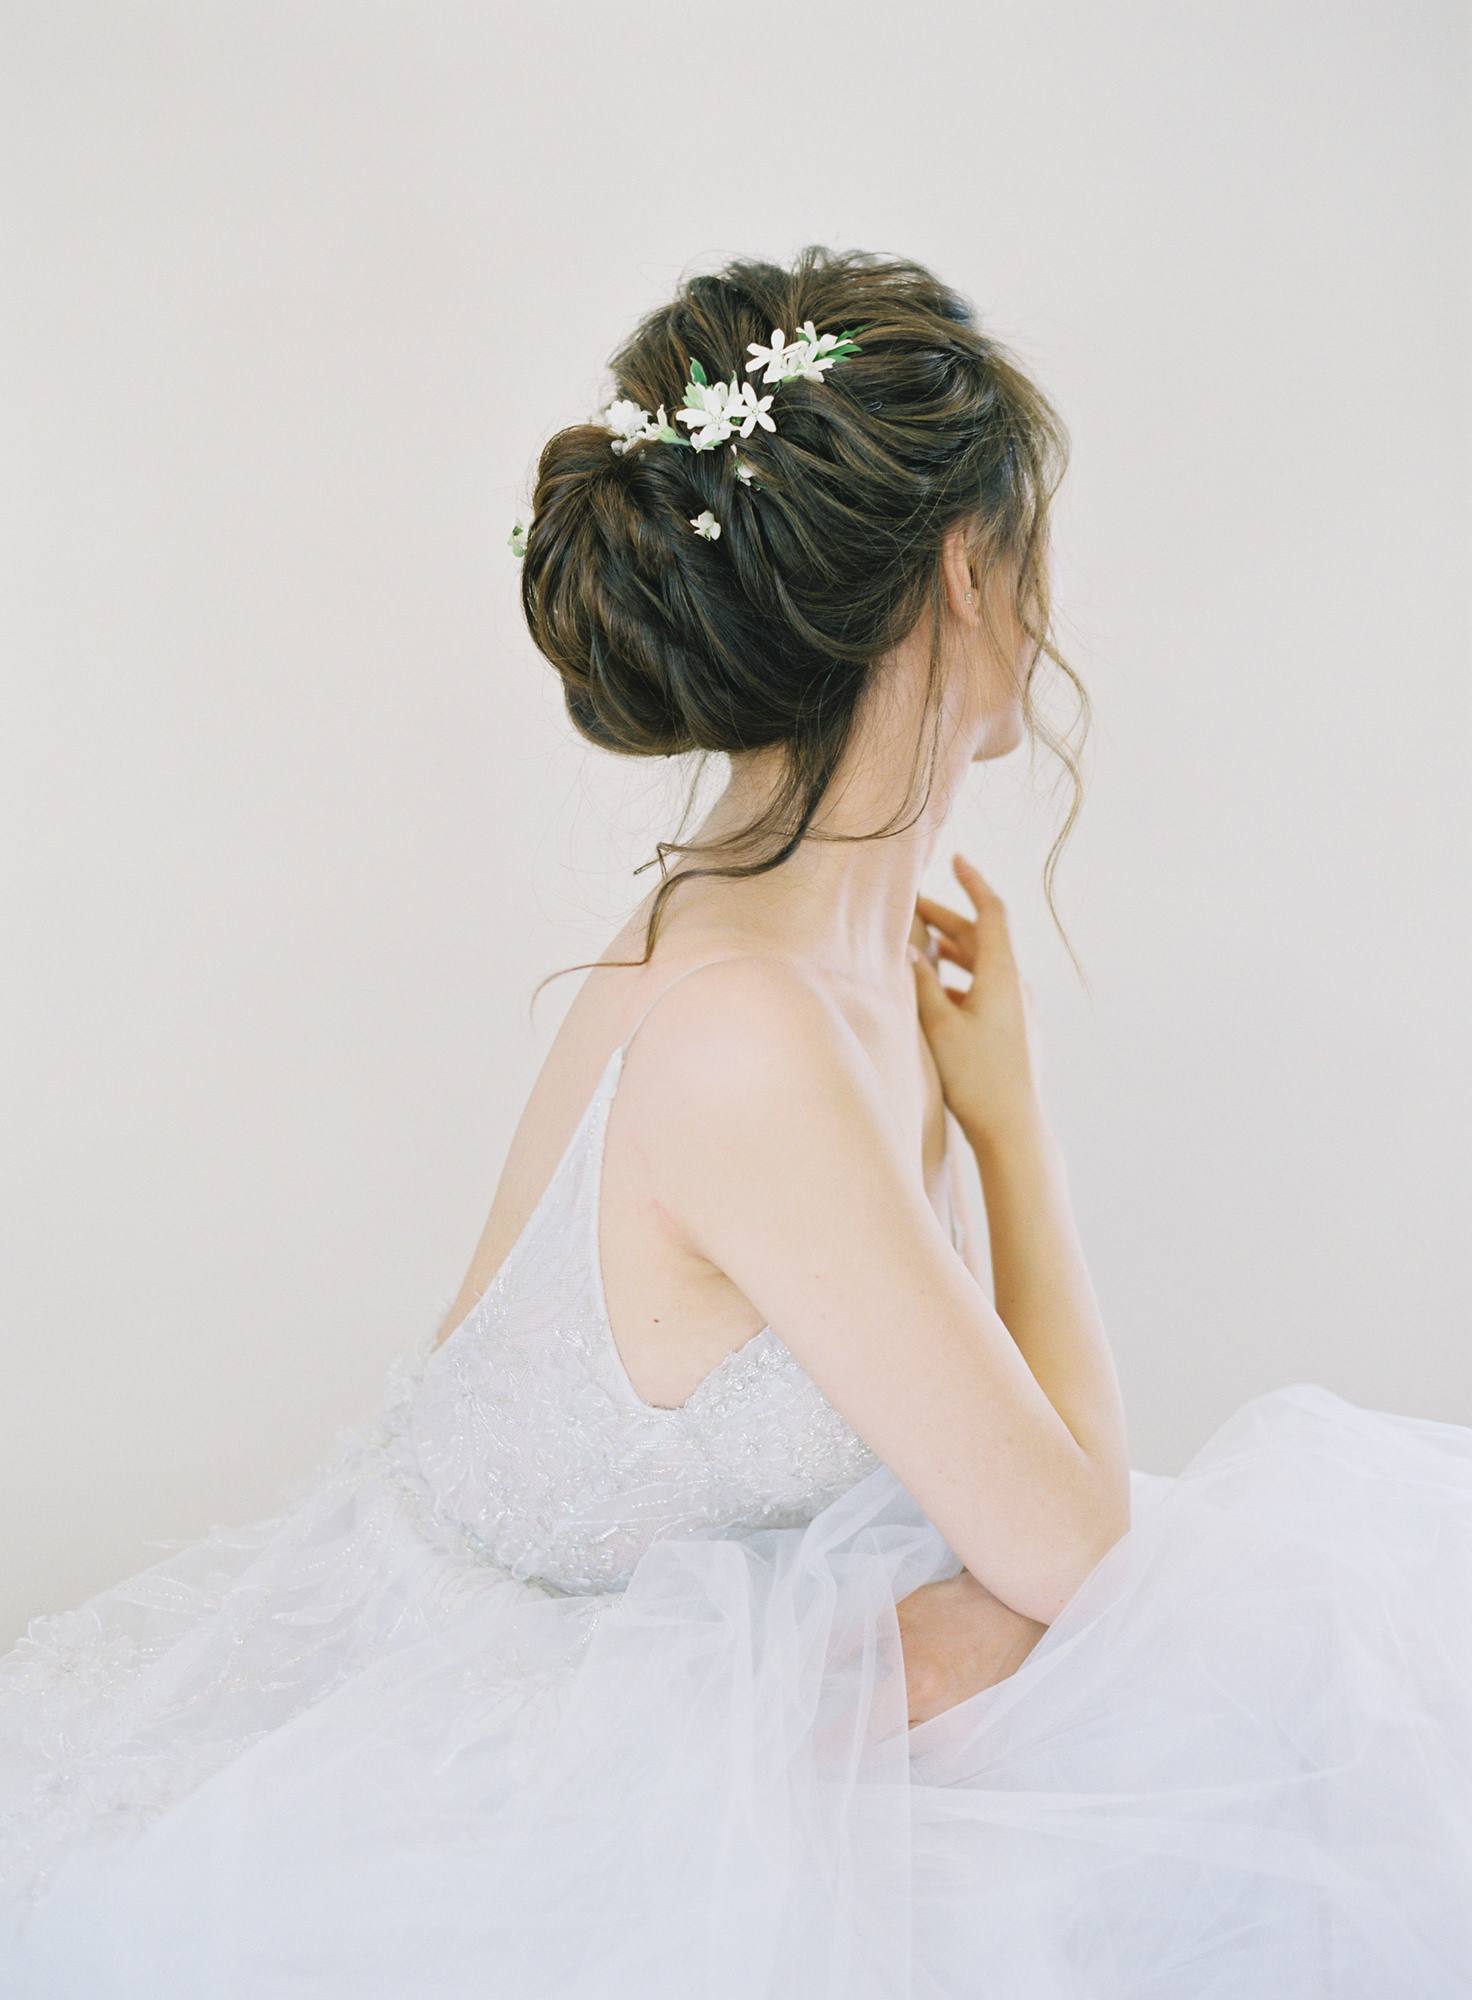 worlds best wedding photos updo hairstyle white jasmine flowers jen huang los angeles wedding photographer